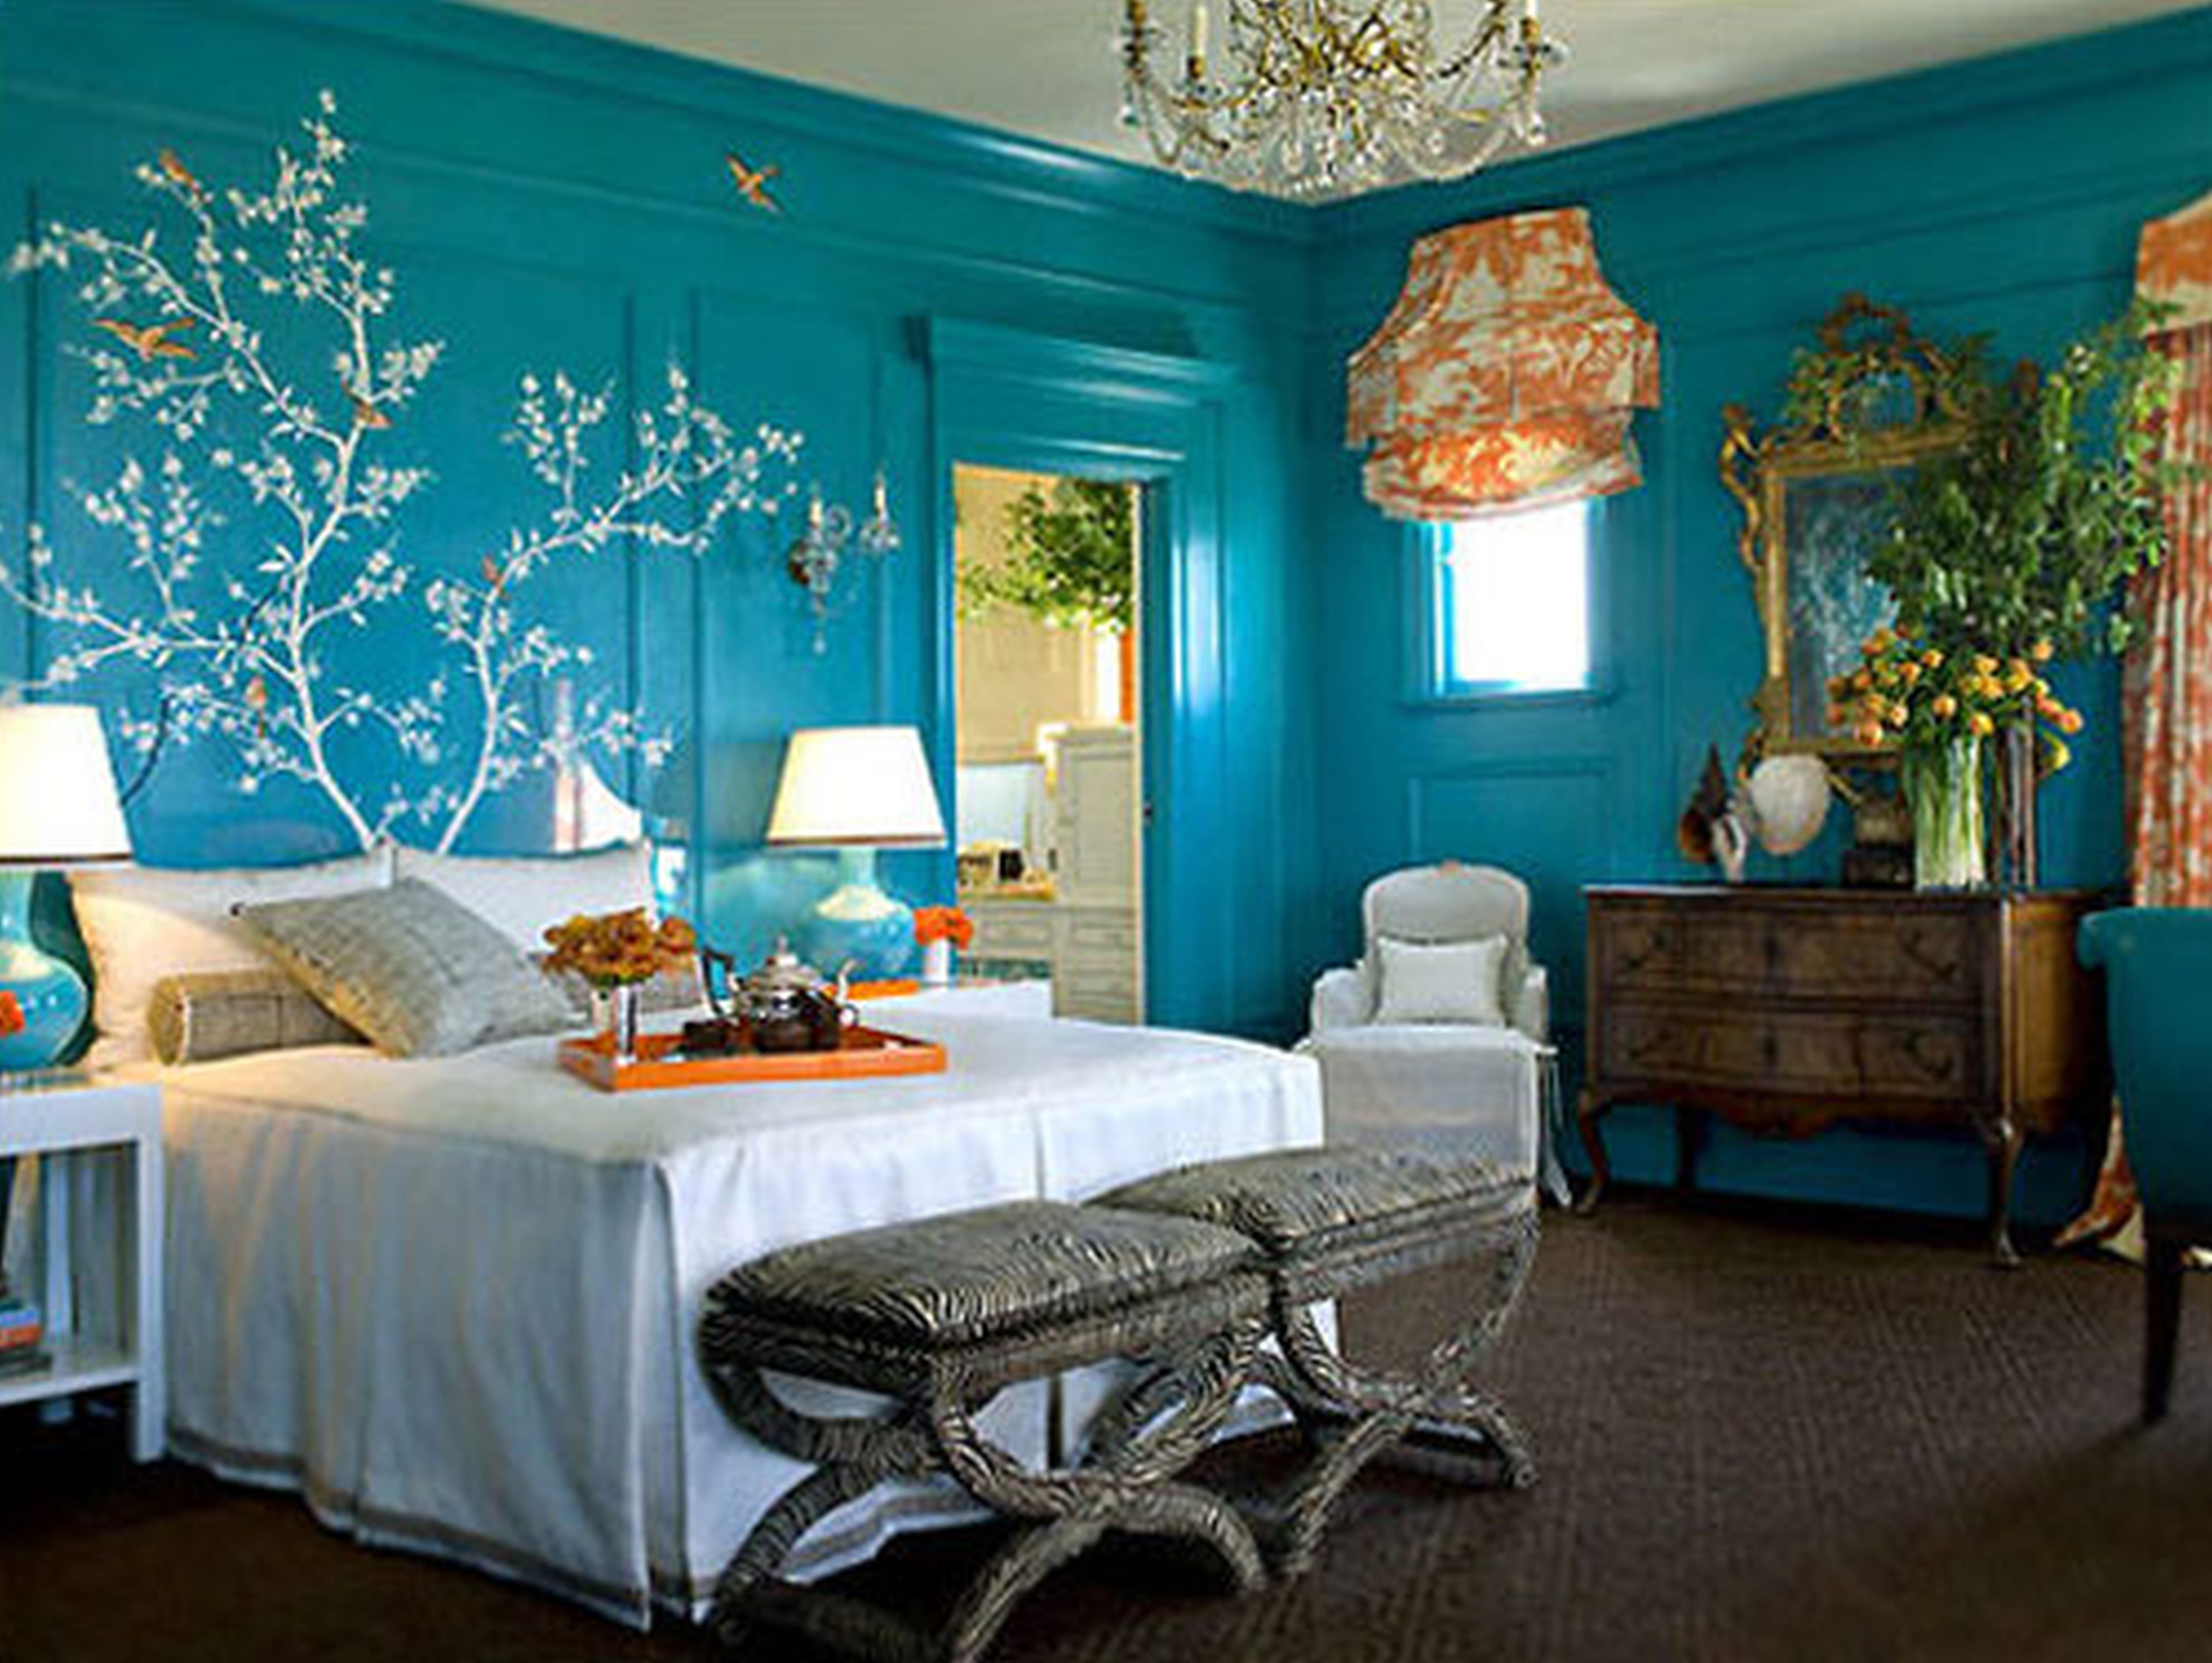 Blue bedroom design ideas - Cool Blue Bedroom Ideas Designs And Pictures Gallery Bedroom